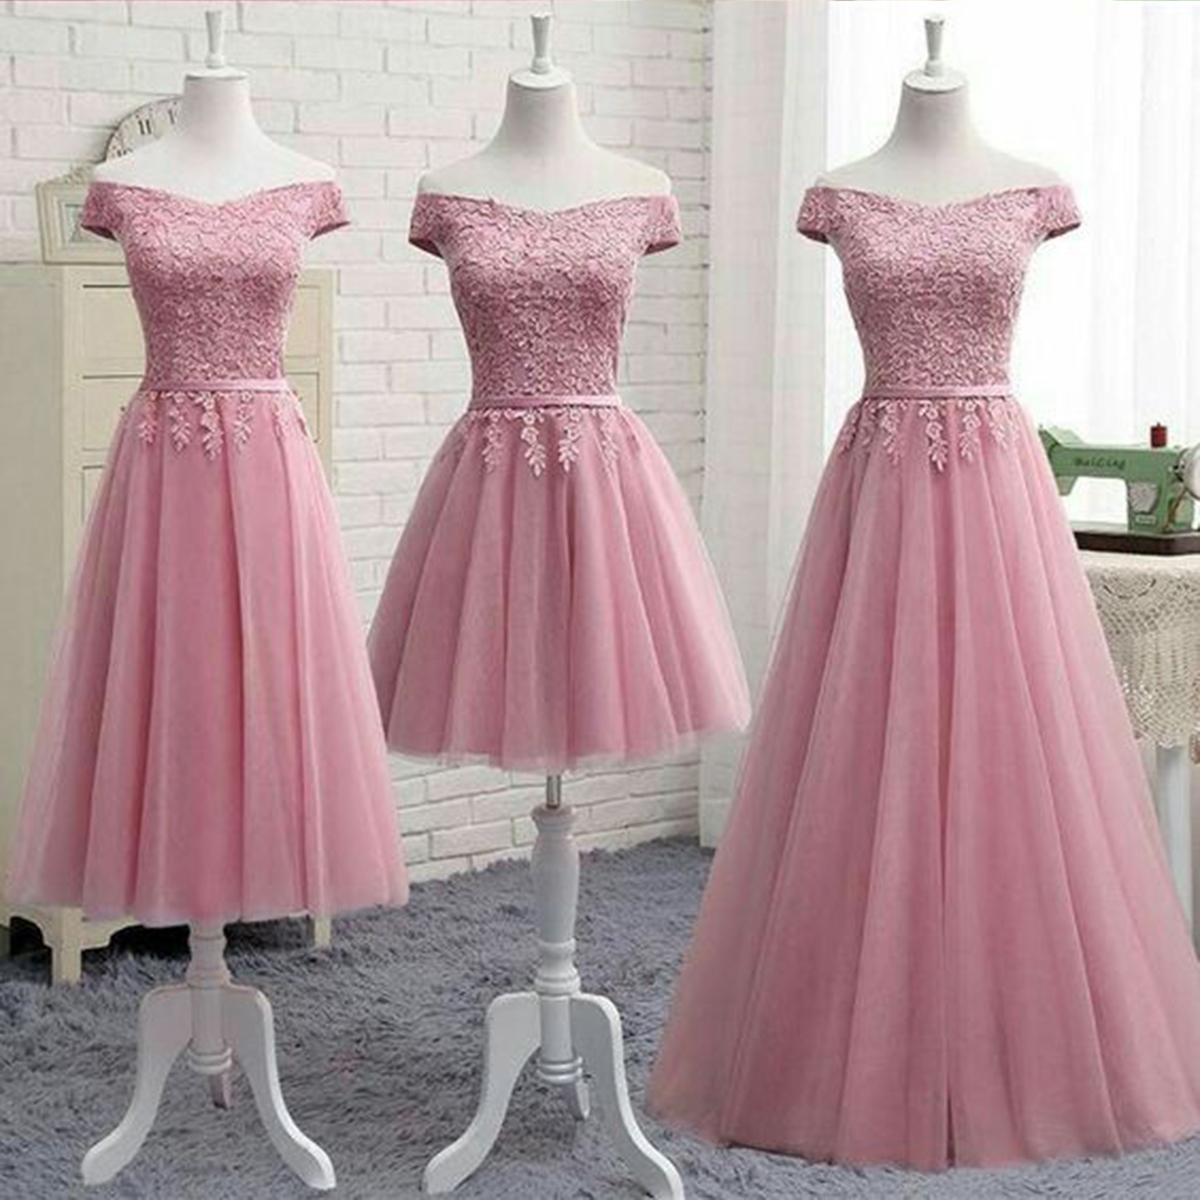 Cheap Prom Dresses by SweetheartDress · Pink tulle off shoulder cute ...